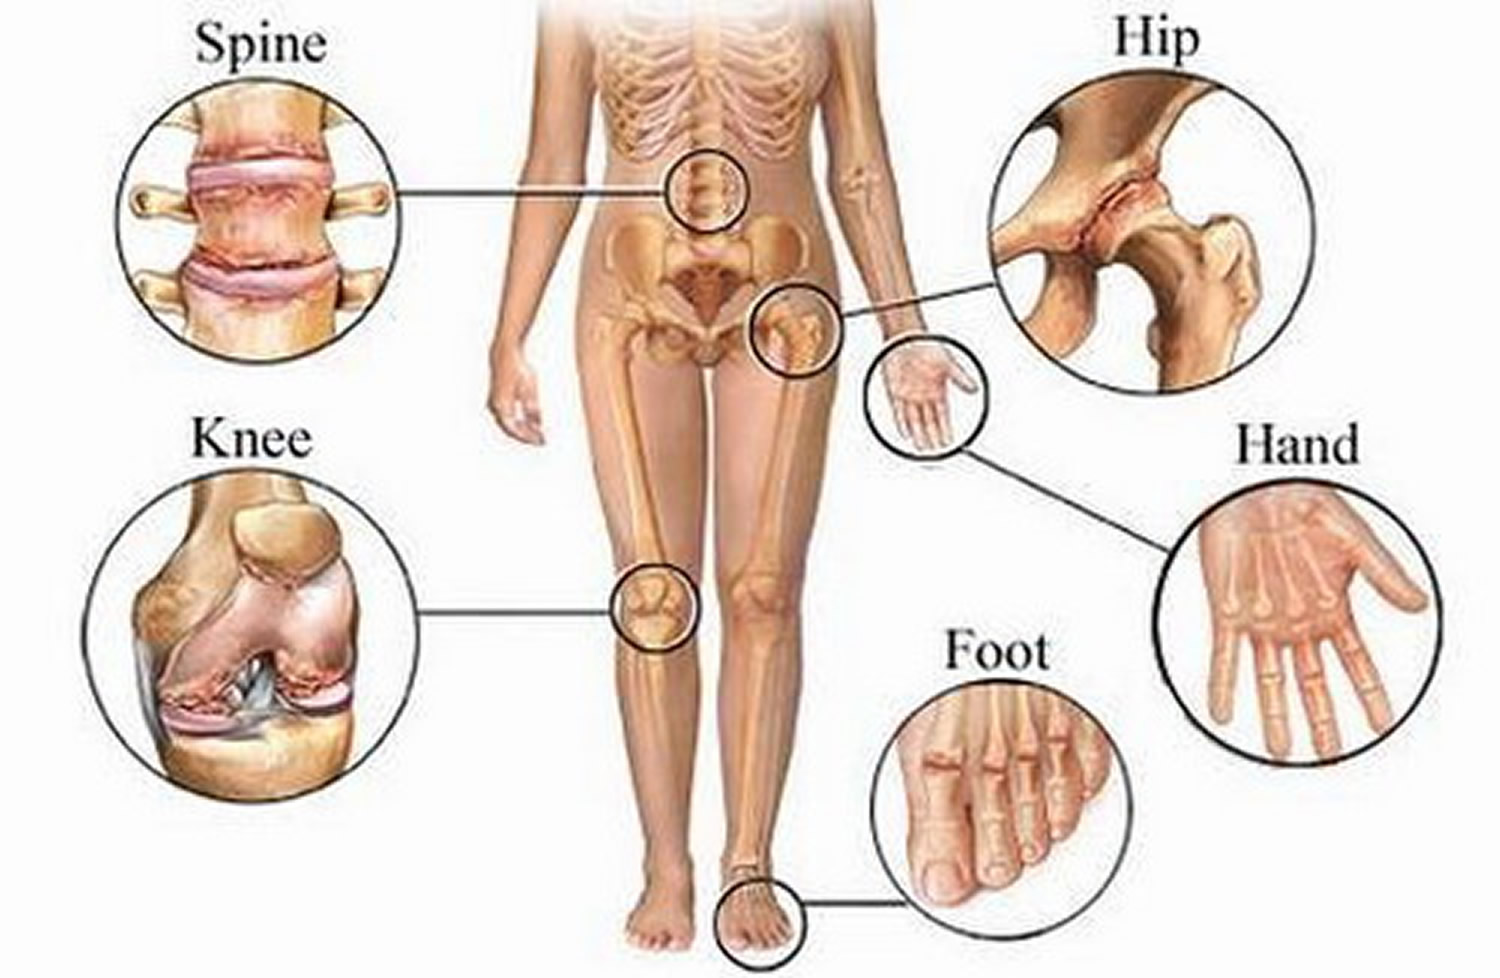 Types Classification Of Body Joints Cartilaginous Synovial Joint A synchondrosis joint is the first sternocostal joint (where the first rib meets the sternum). cartilaginous synovial joint